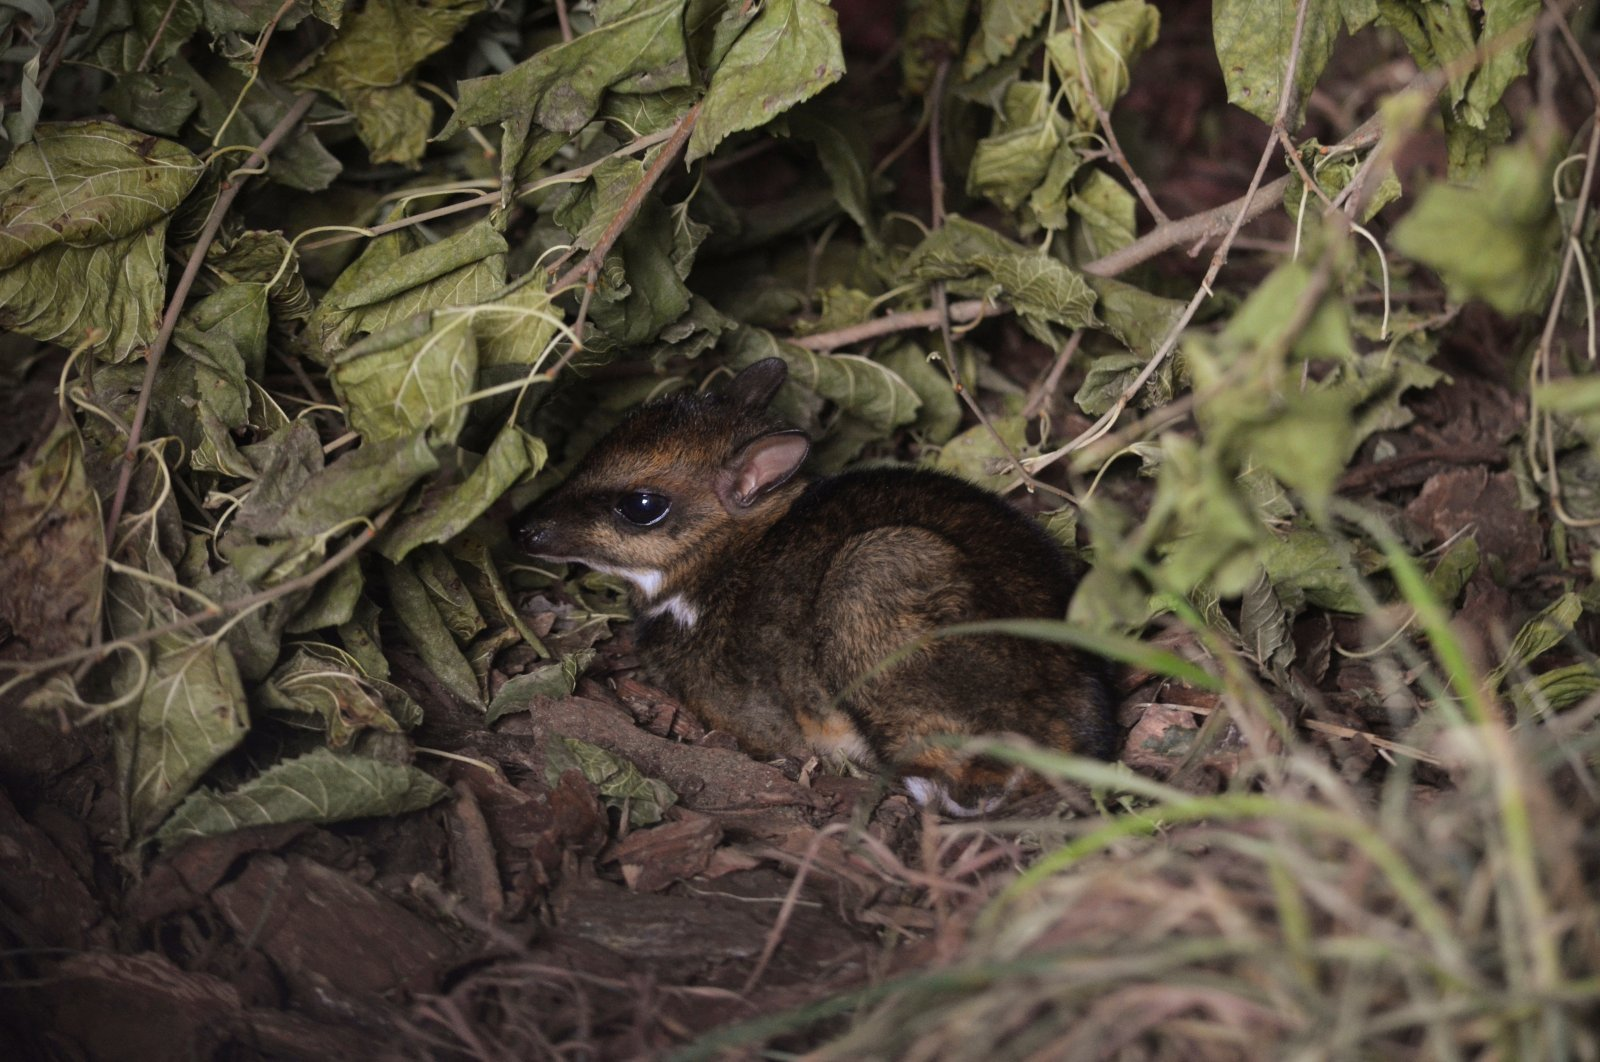 Philippine mouse-deer, born at Zoo Wroclaw, Poland on Nov. 10, 2020.